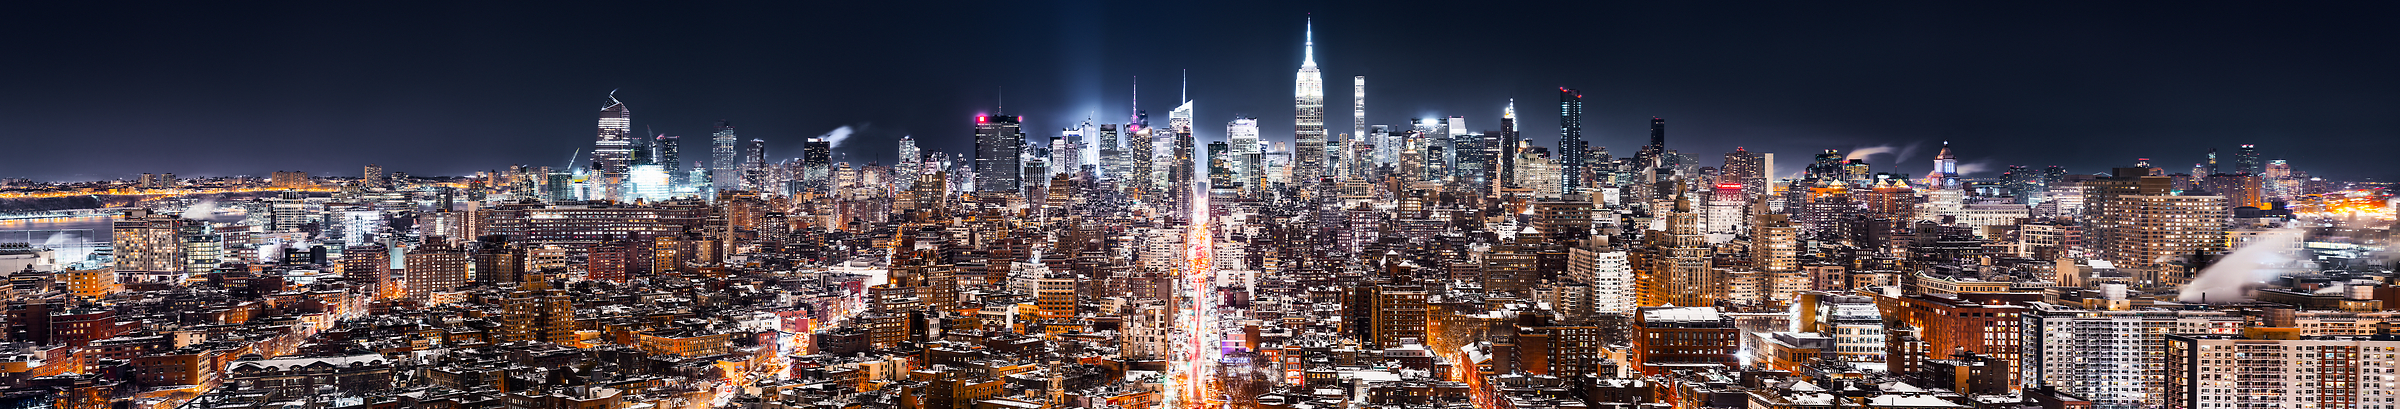 4,636 megapixels! A very high resolution, large-format panorama photo of the New York City skyline at night; cityscape fine art photo created by Dan Piech in Midtown Manhattan, New York City